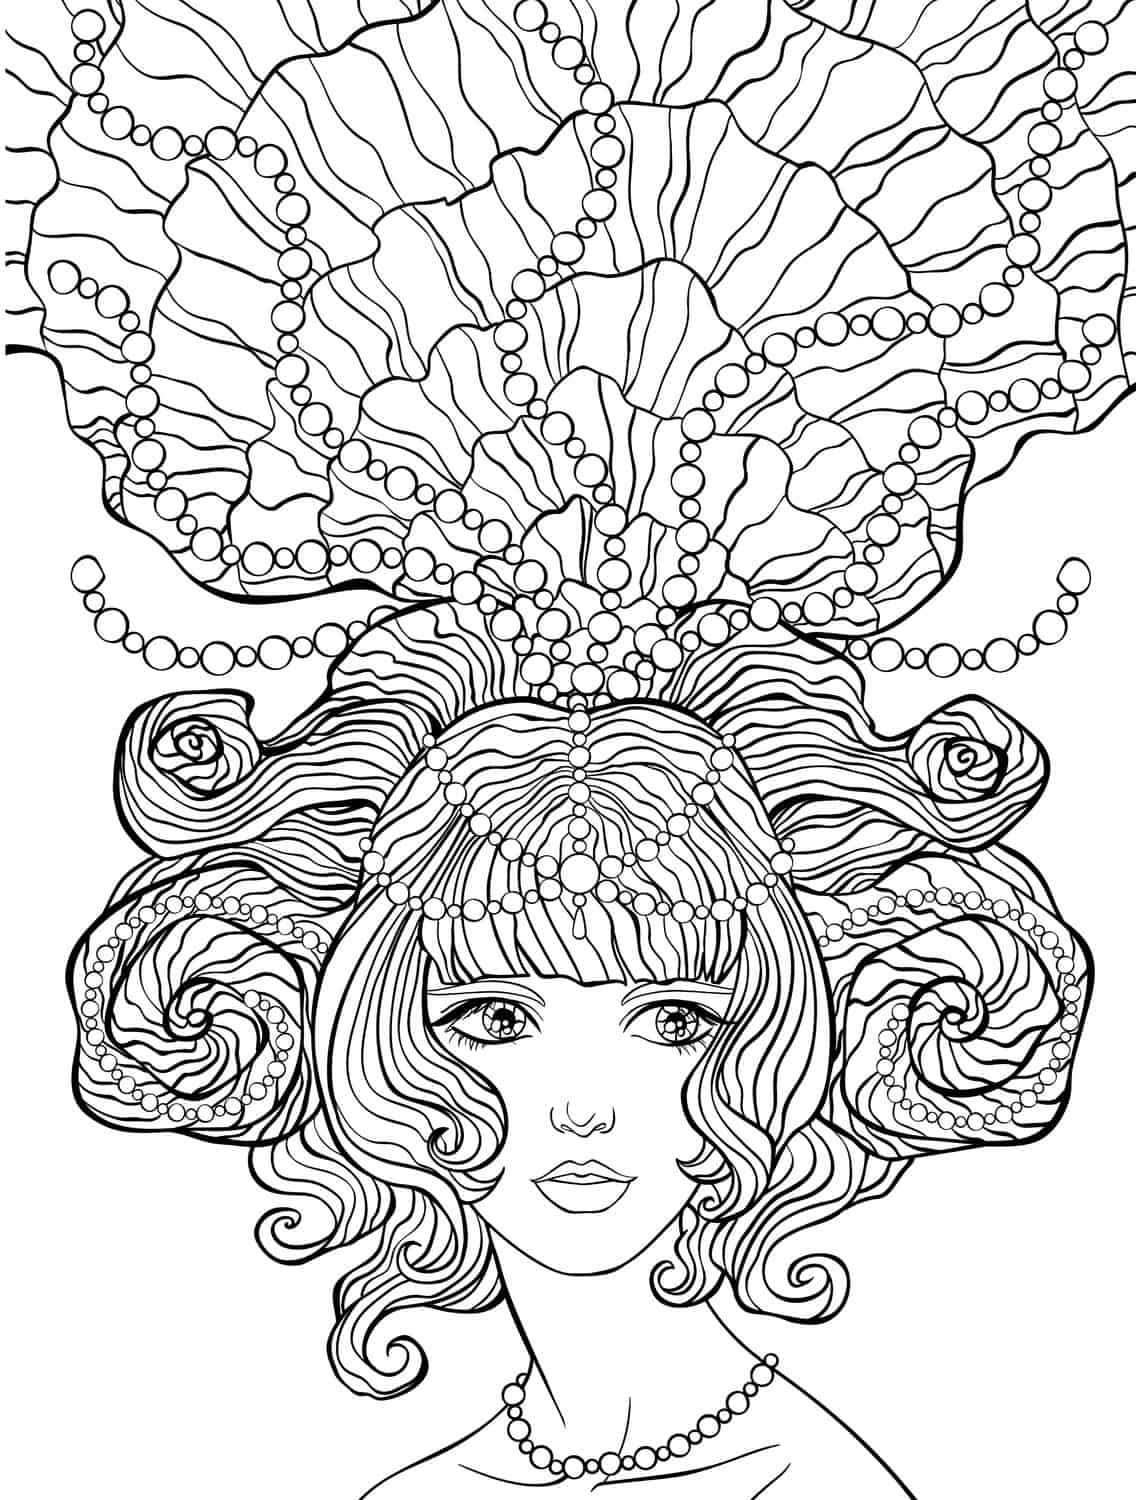 crazy coloring pages for adults - photo#26